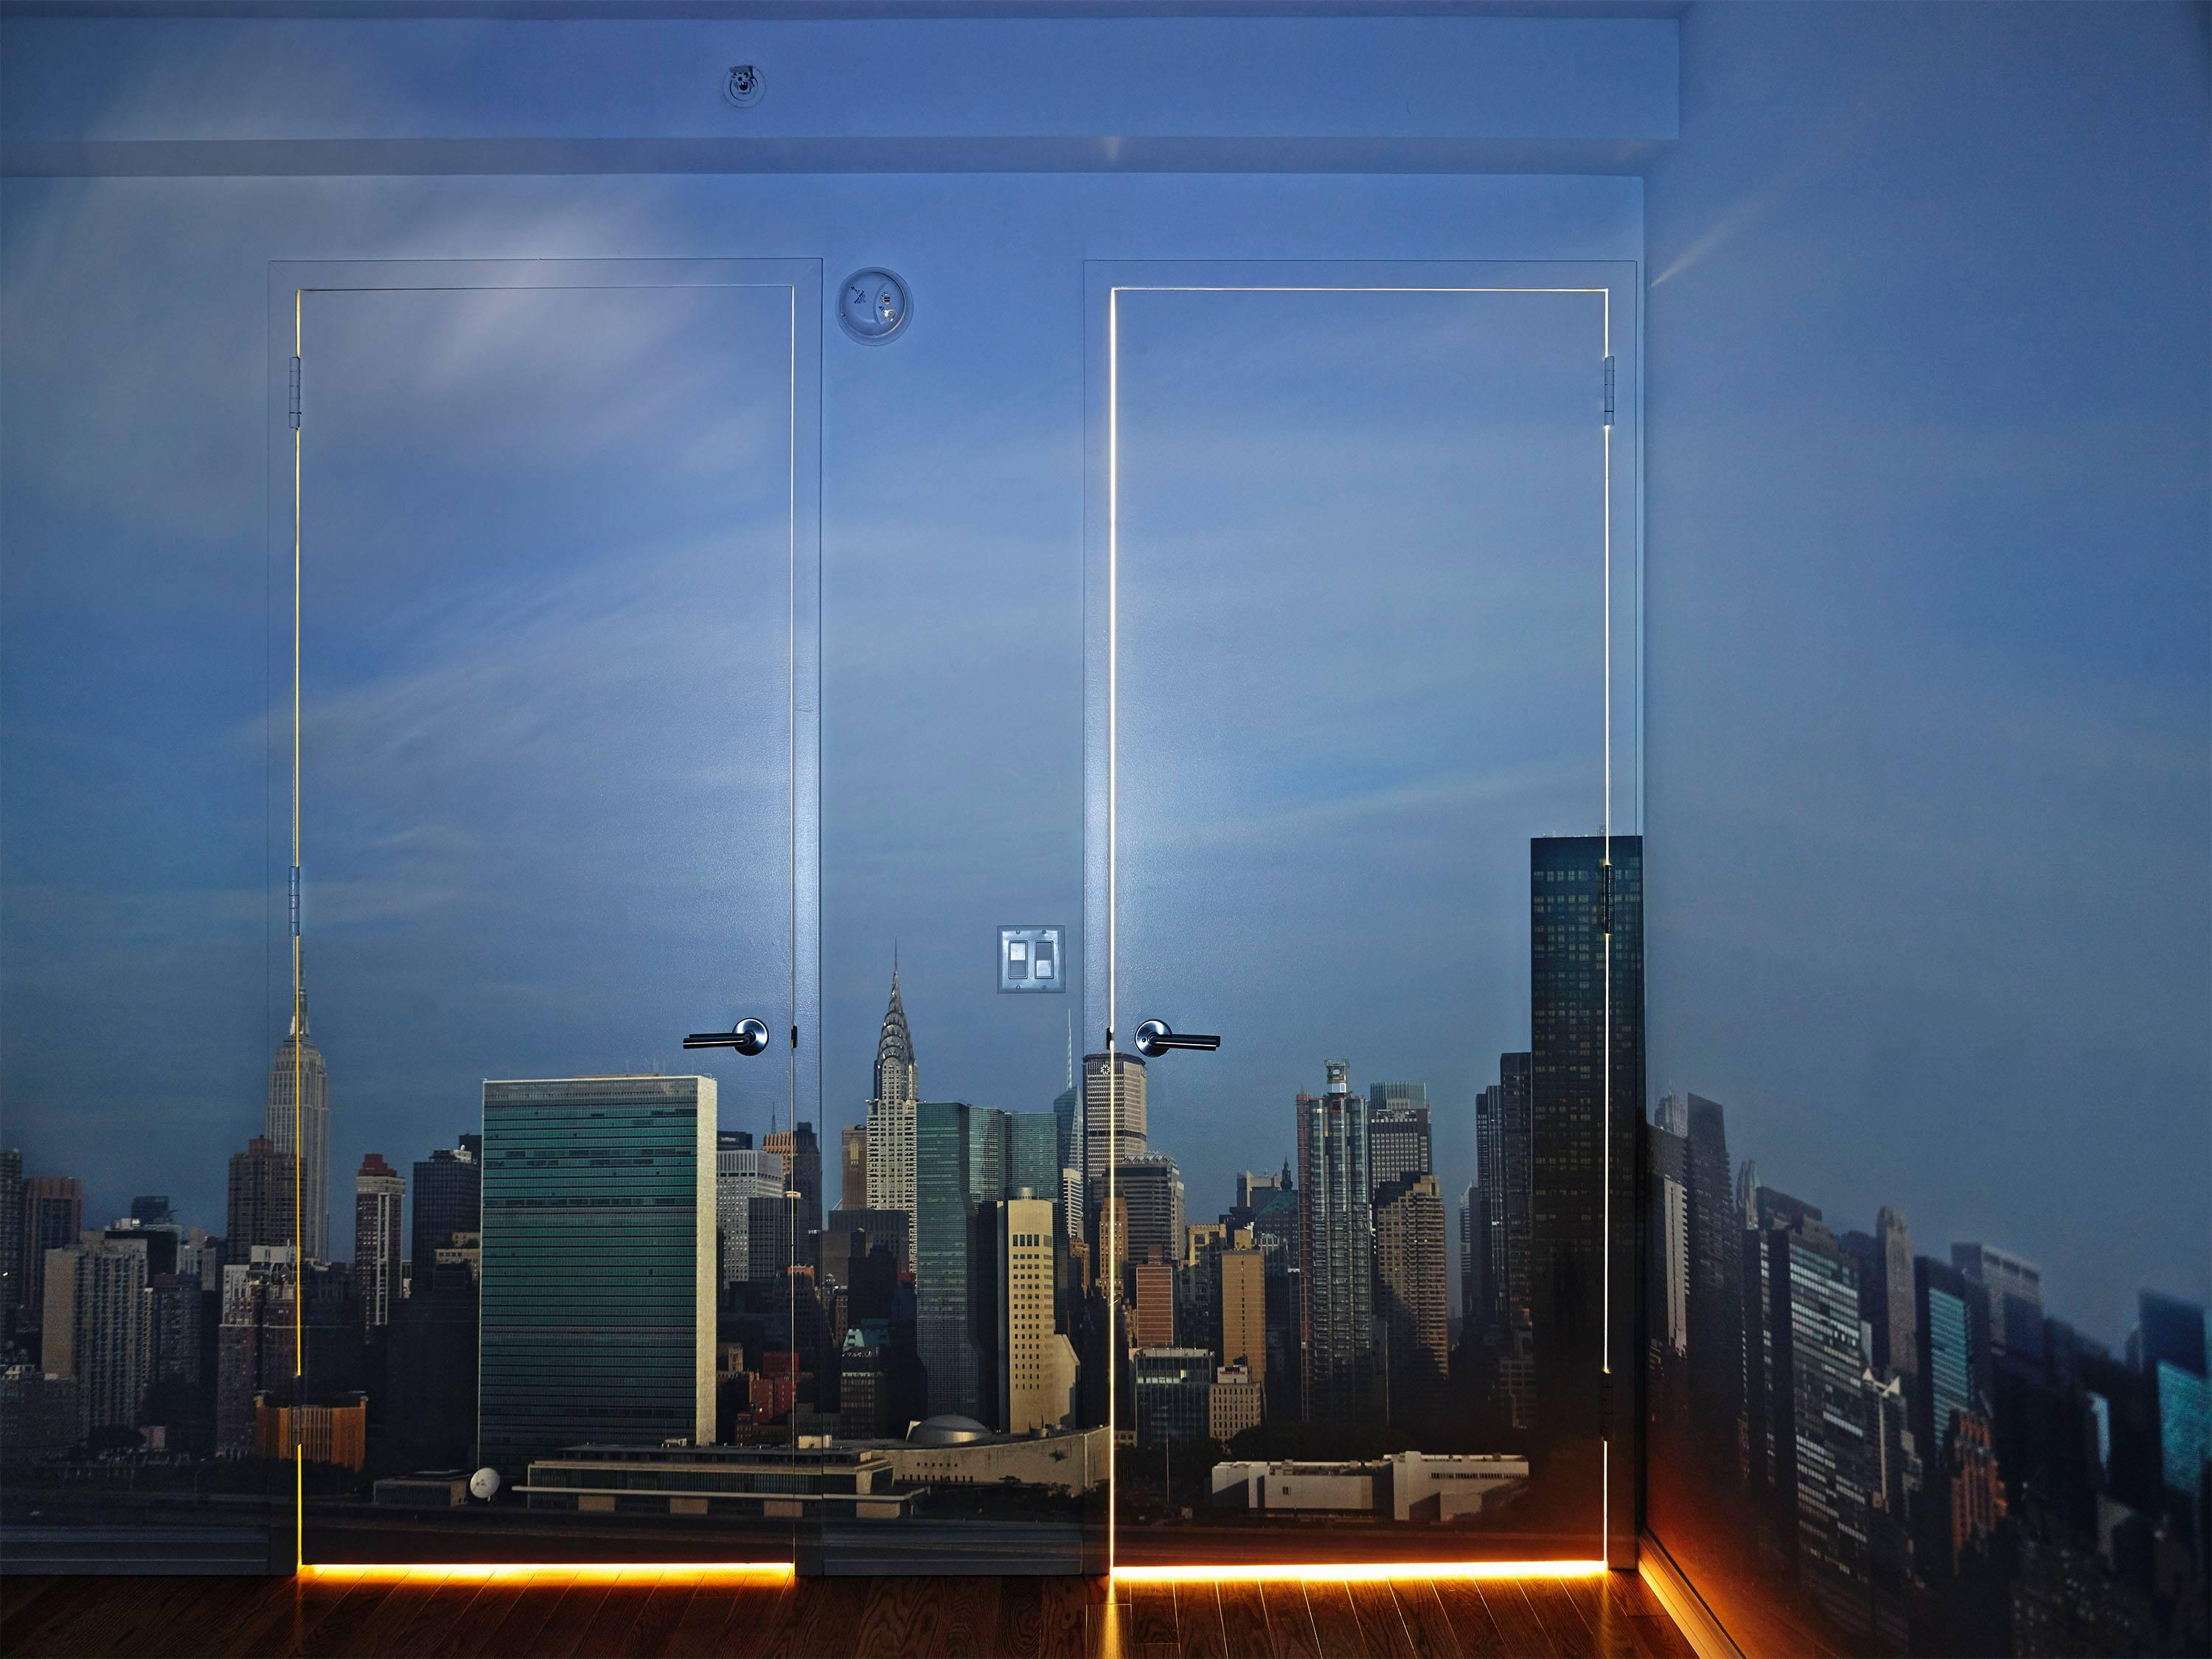 Camera Obscura: Early Morning View of the East Side of Midtown Manhattan